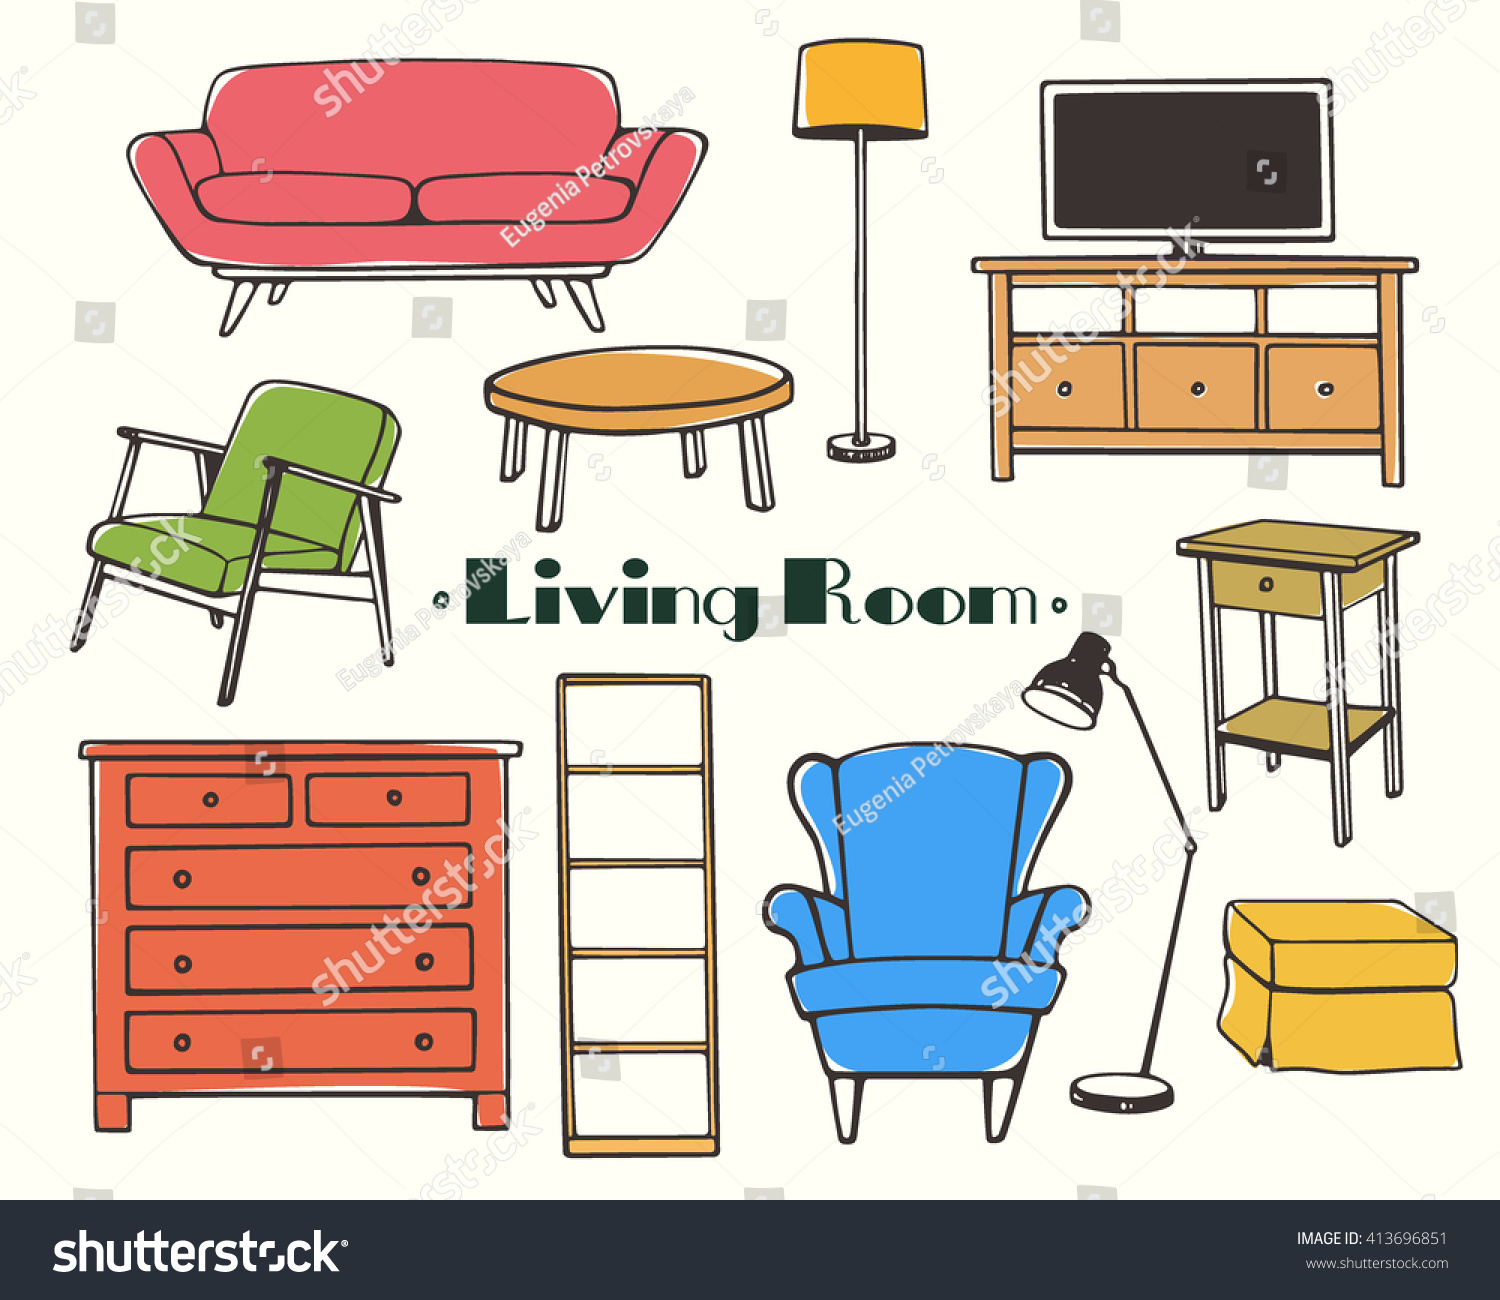 Vector Illustration Of Living Room Furniture Hand Drawn Set Made In Linear Style